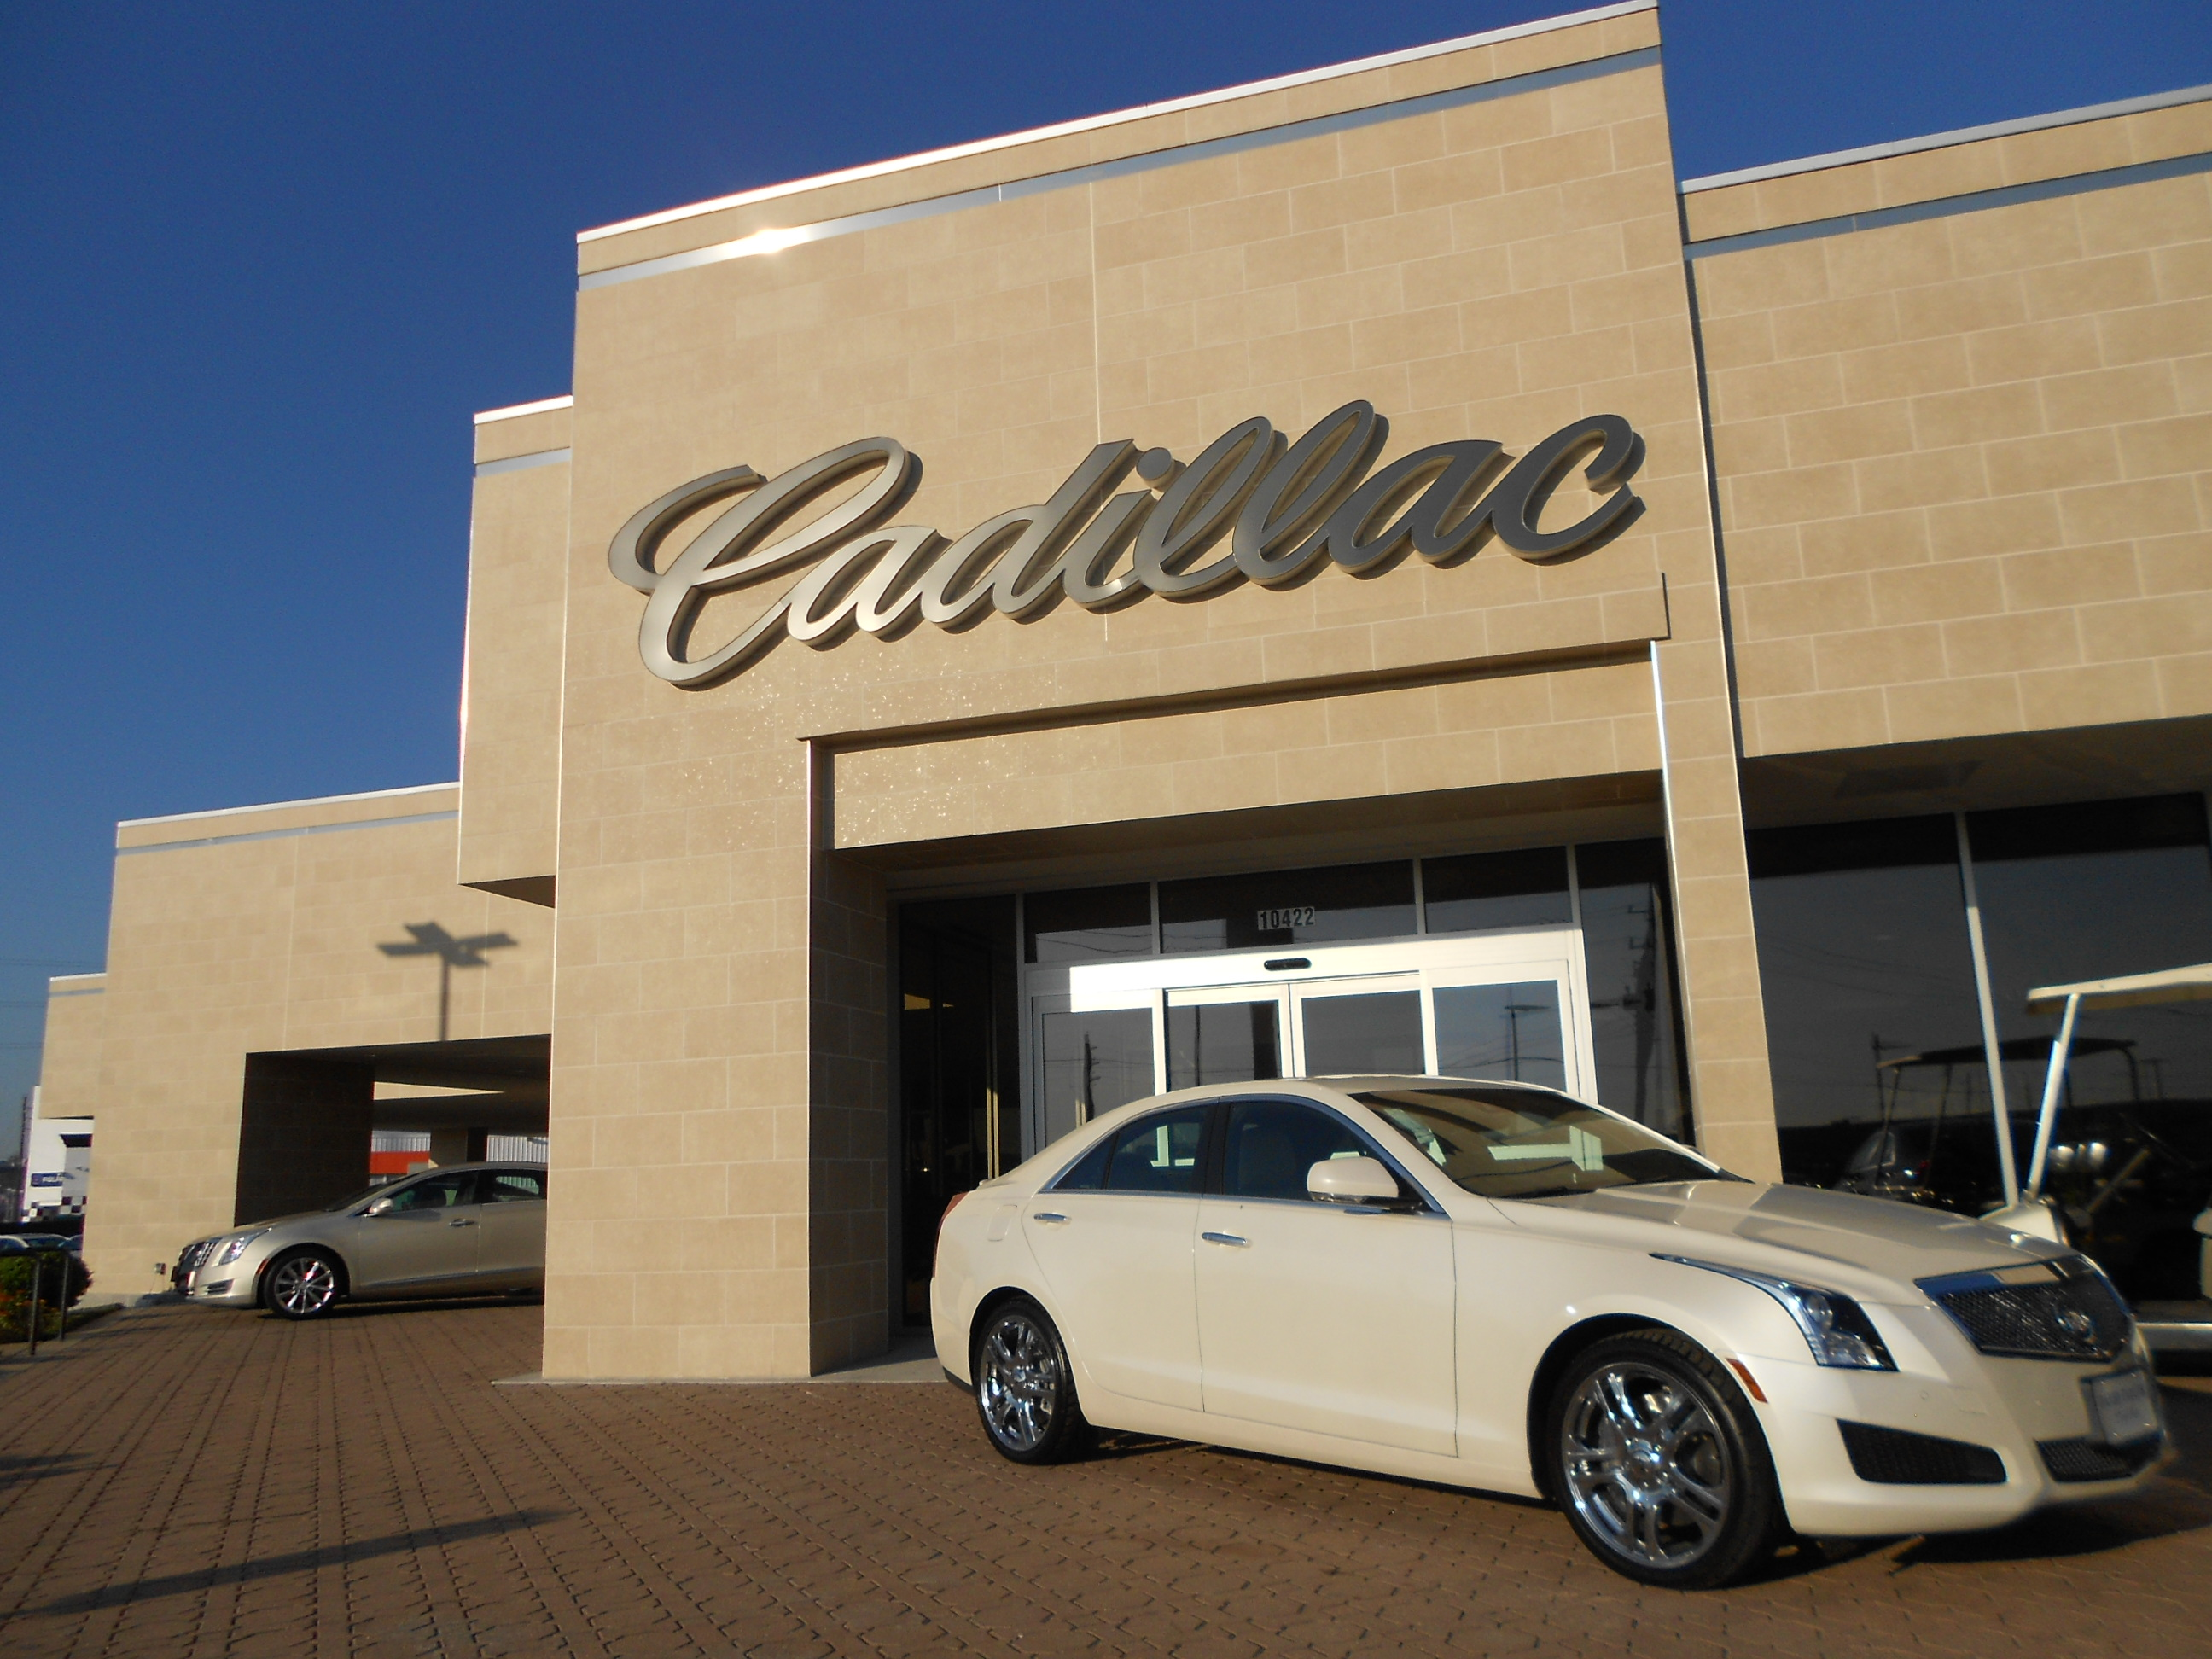 david taylor cadillac houston tx company information. Cars Review. Best American Auto & Cars Review